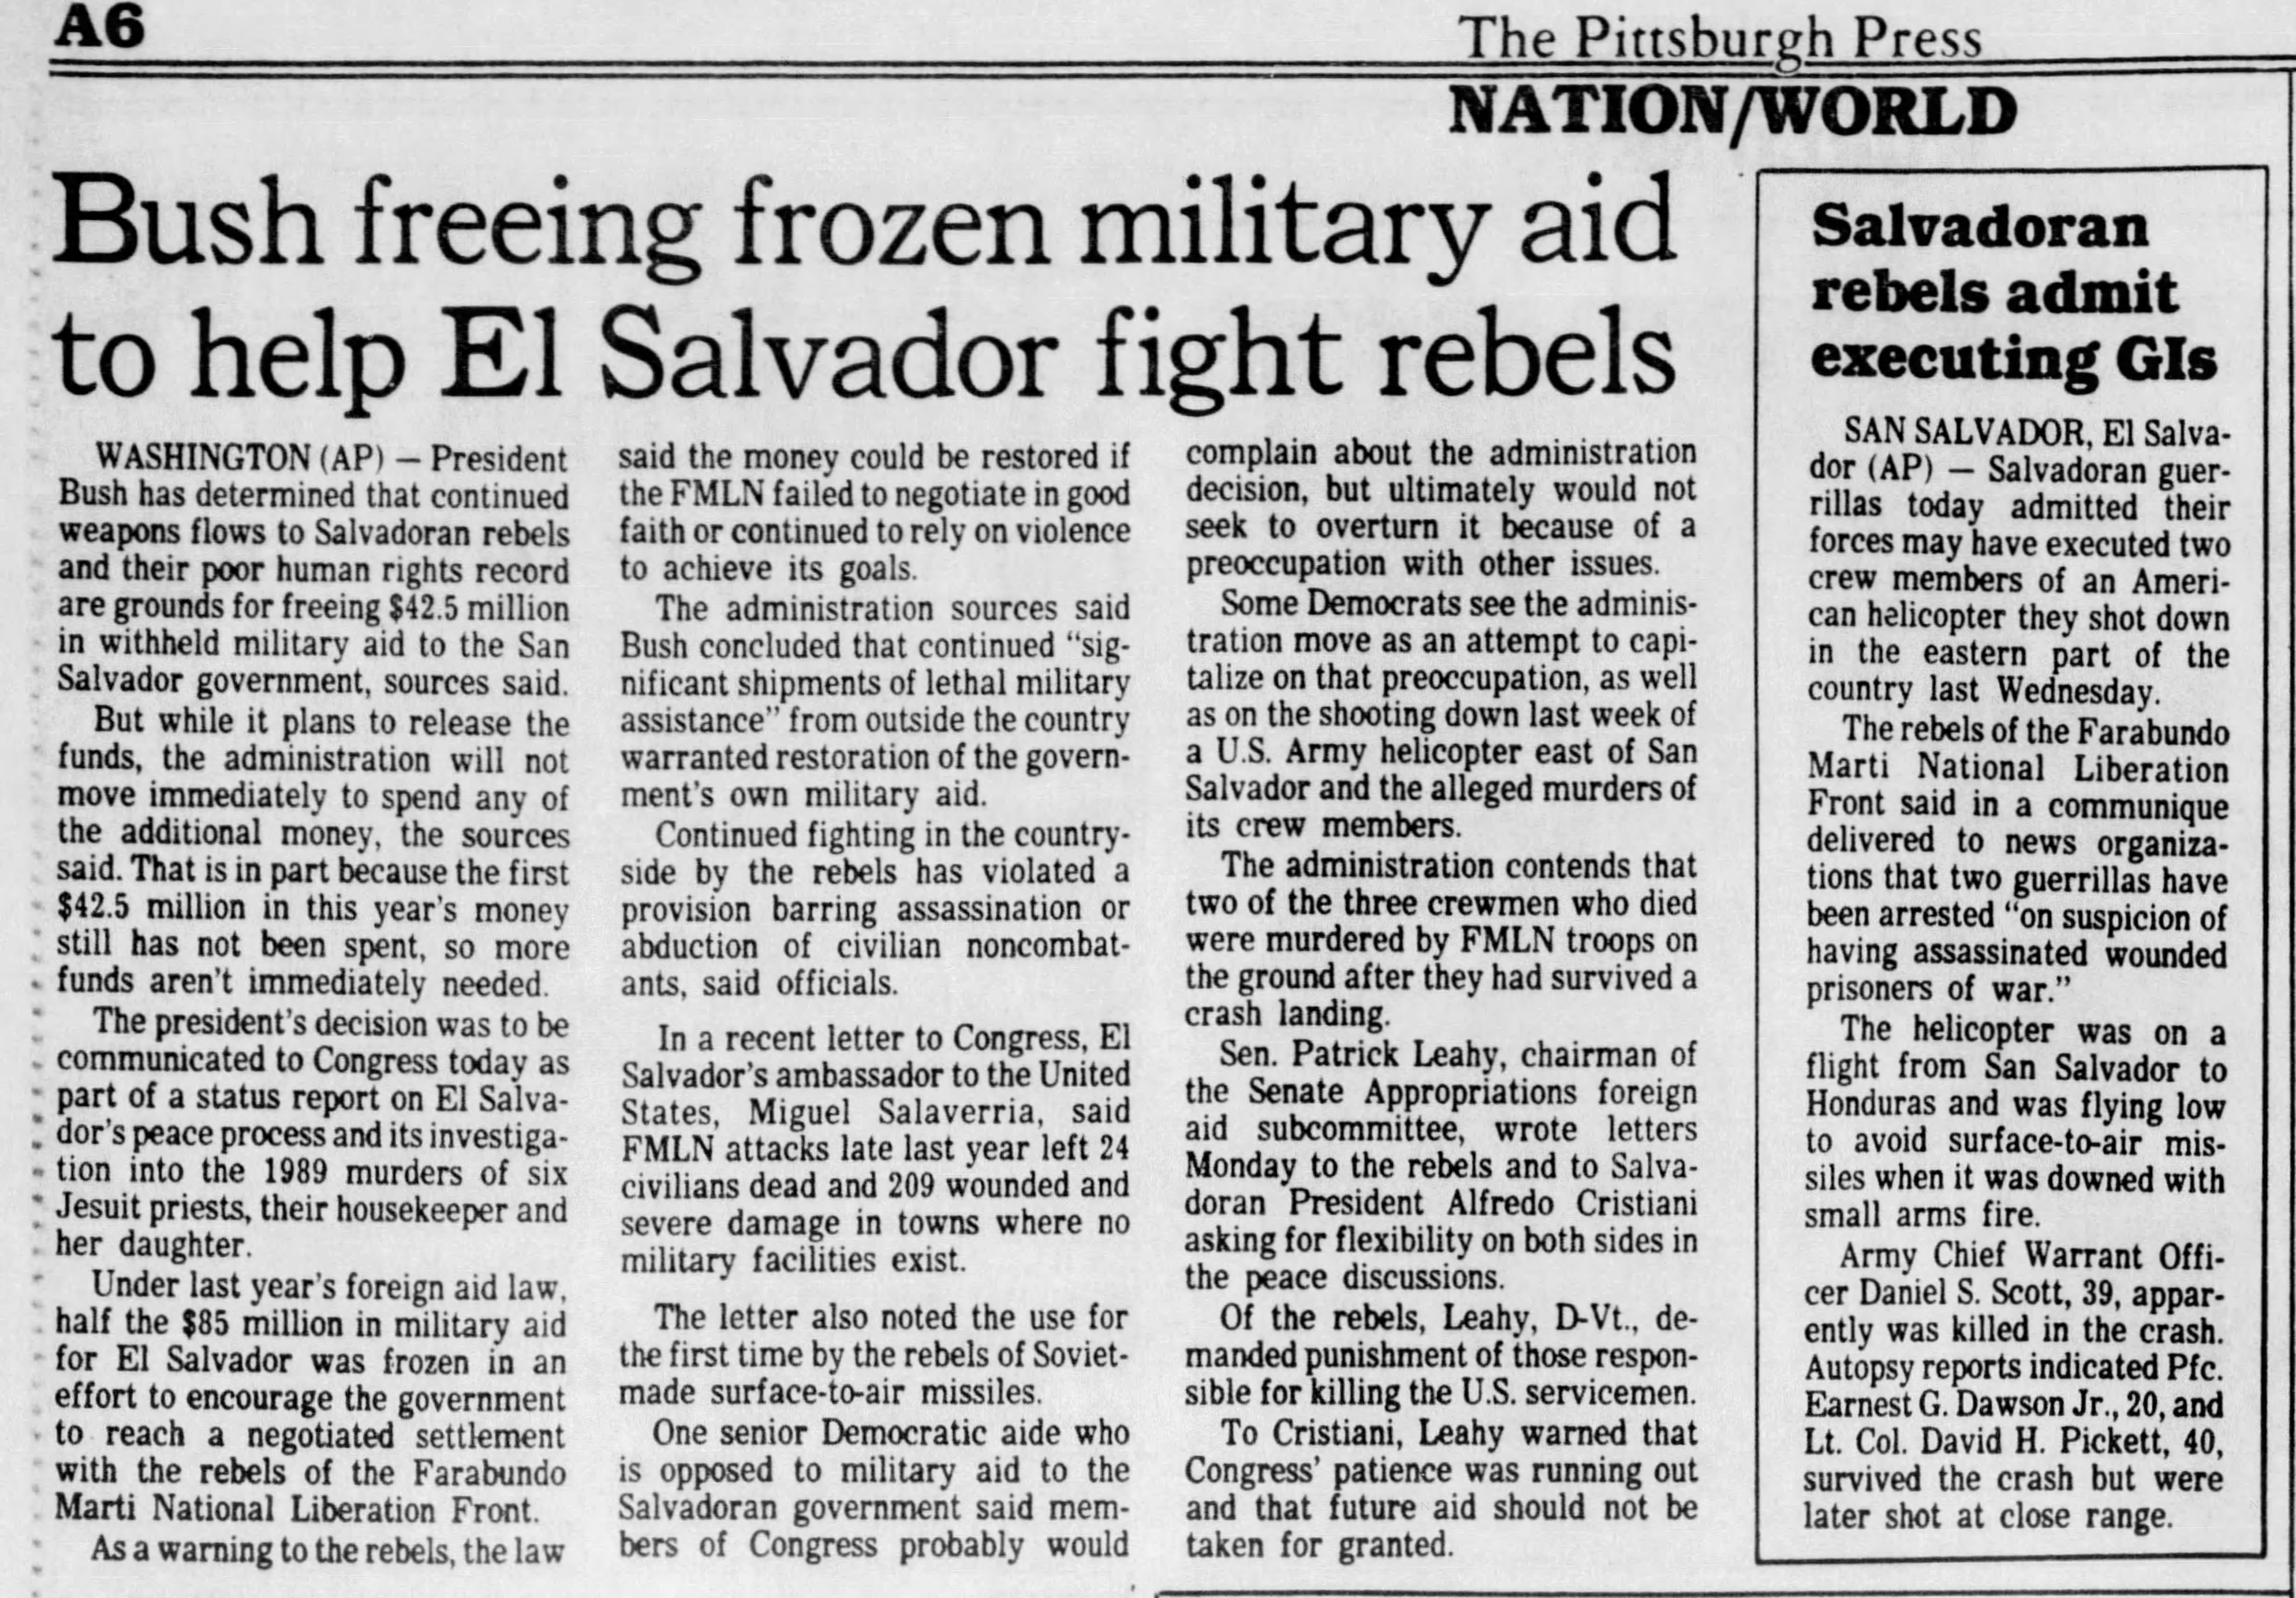 1991 1 9 Pitt Press Bush freeing frozen military aid to help El Sal fight rebels